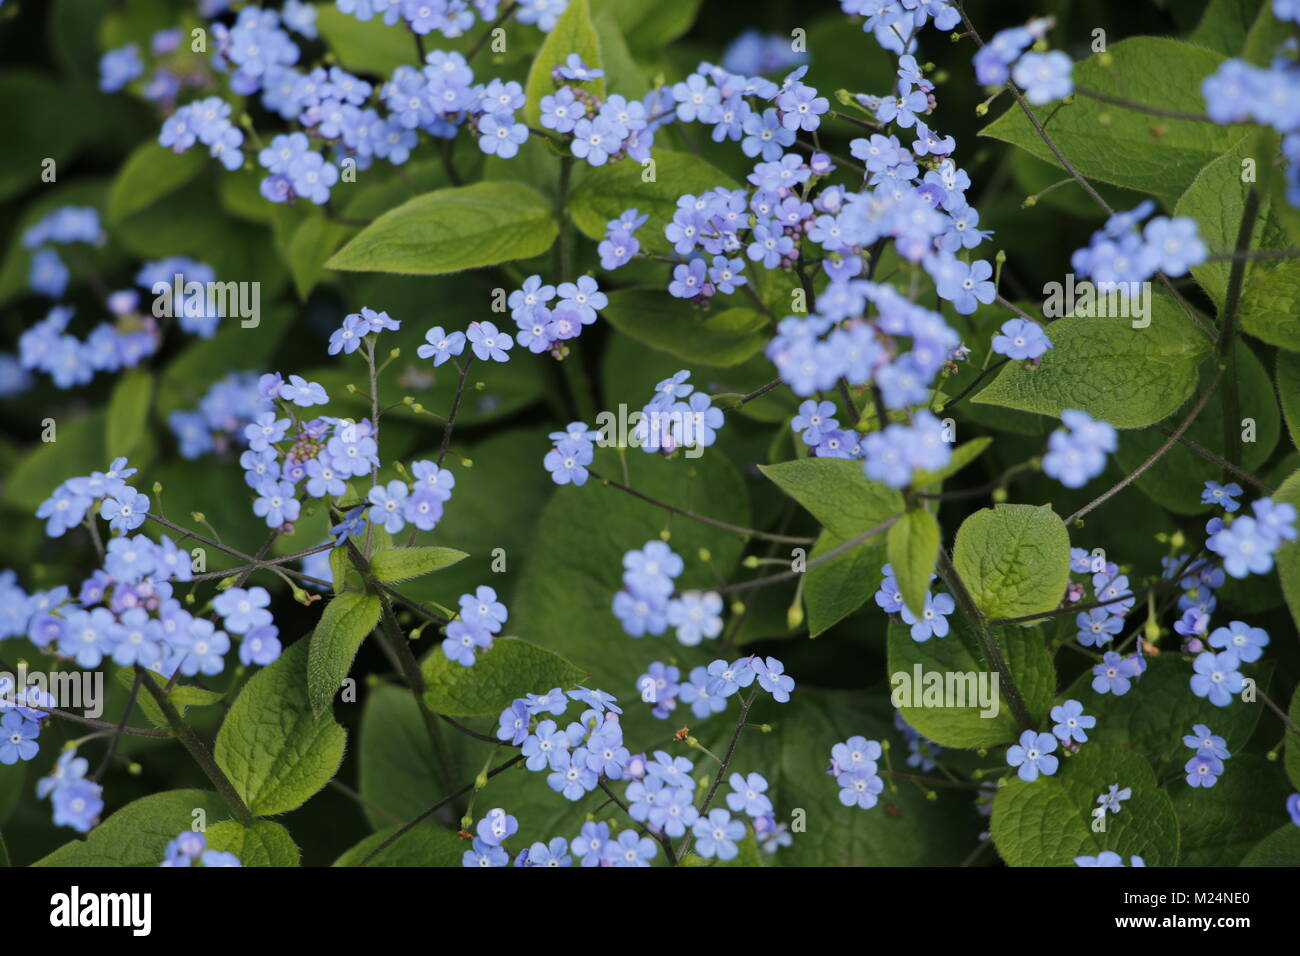 Forget Me Not Flowers Tiny Blue Flowers Stock Photo 173437656 Alamy